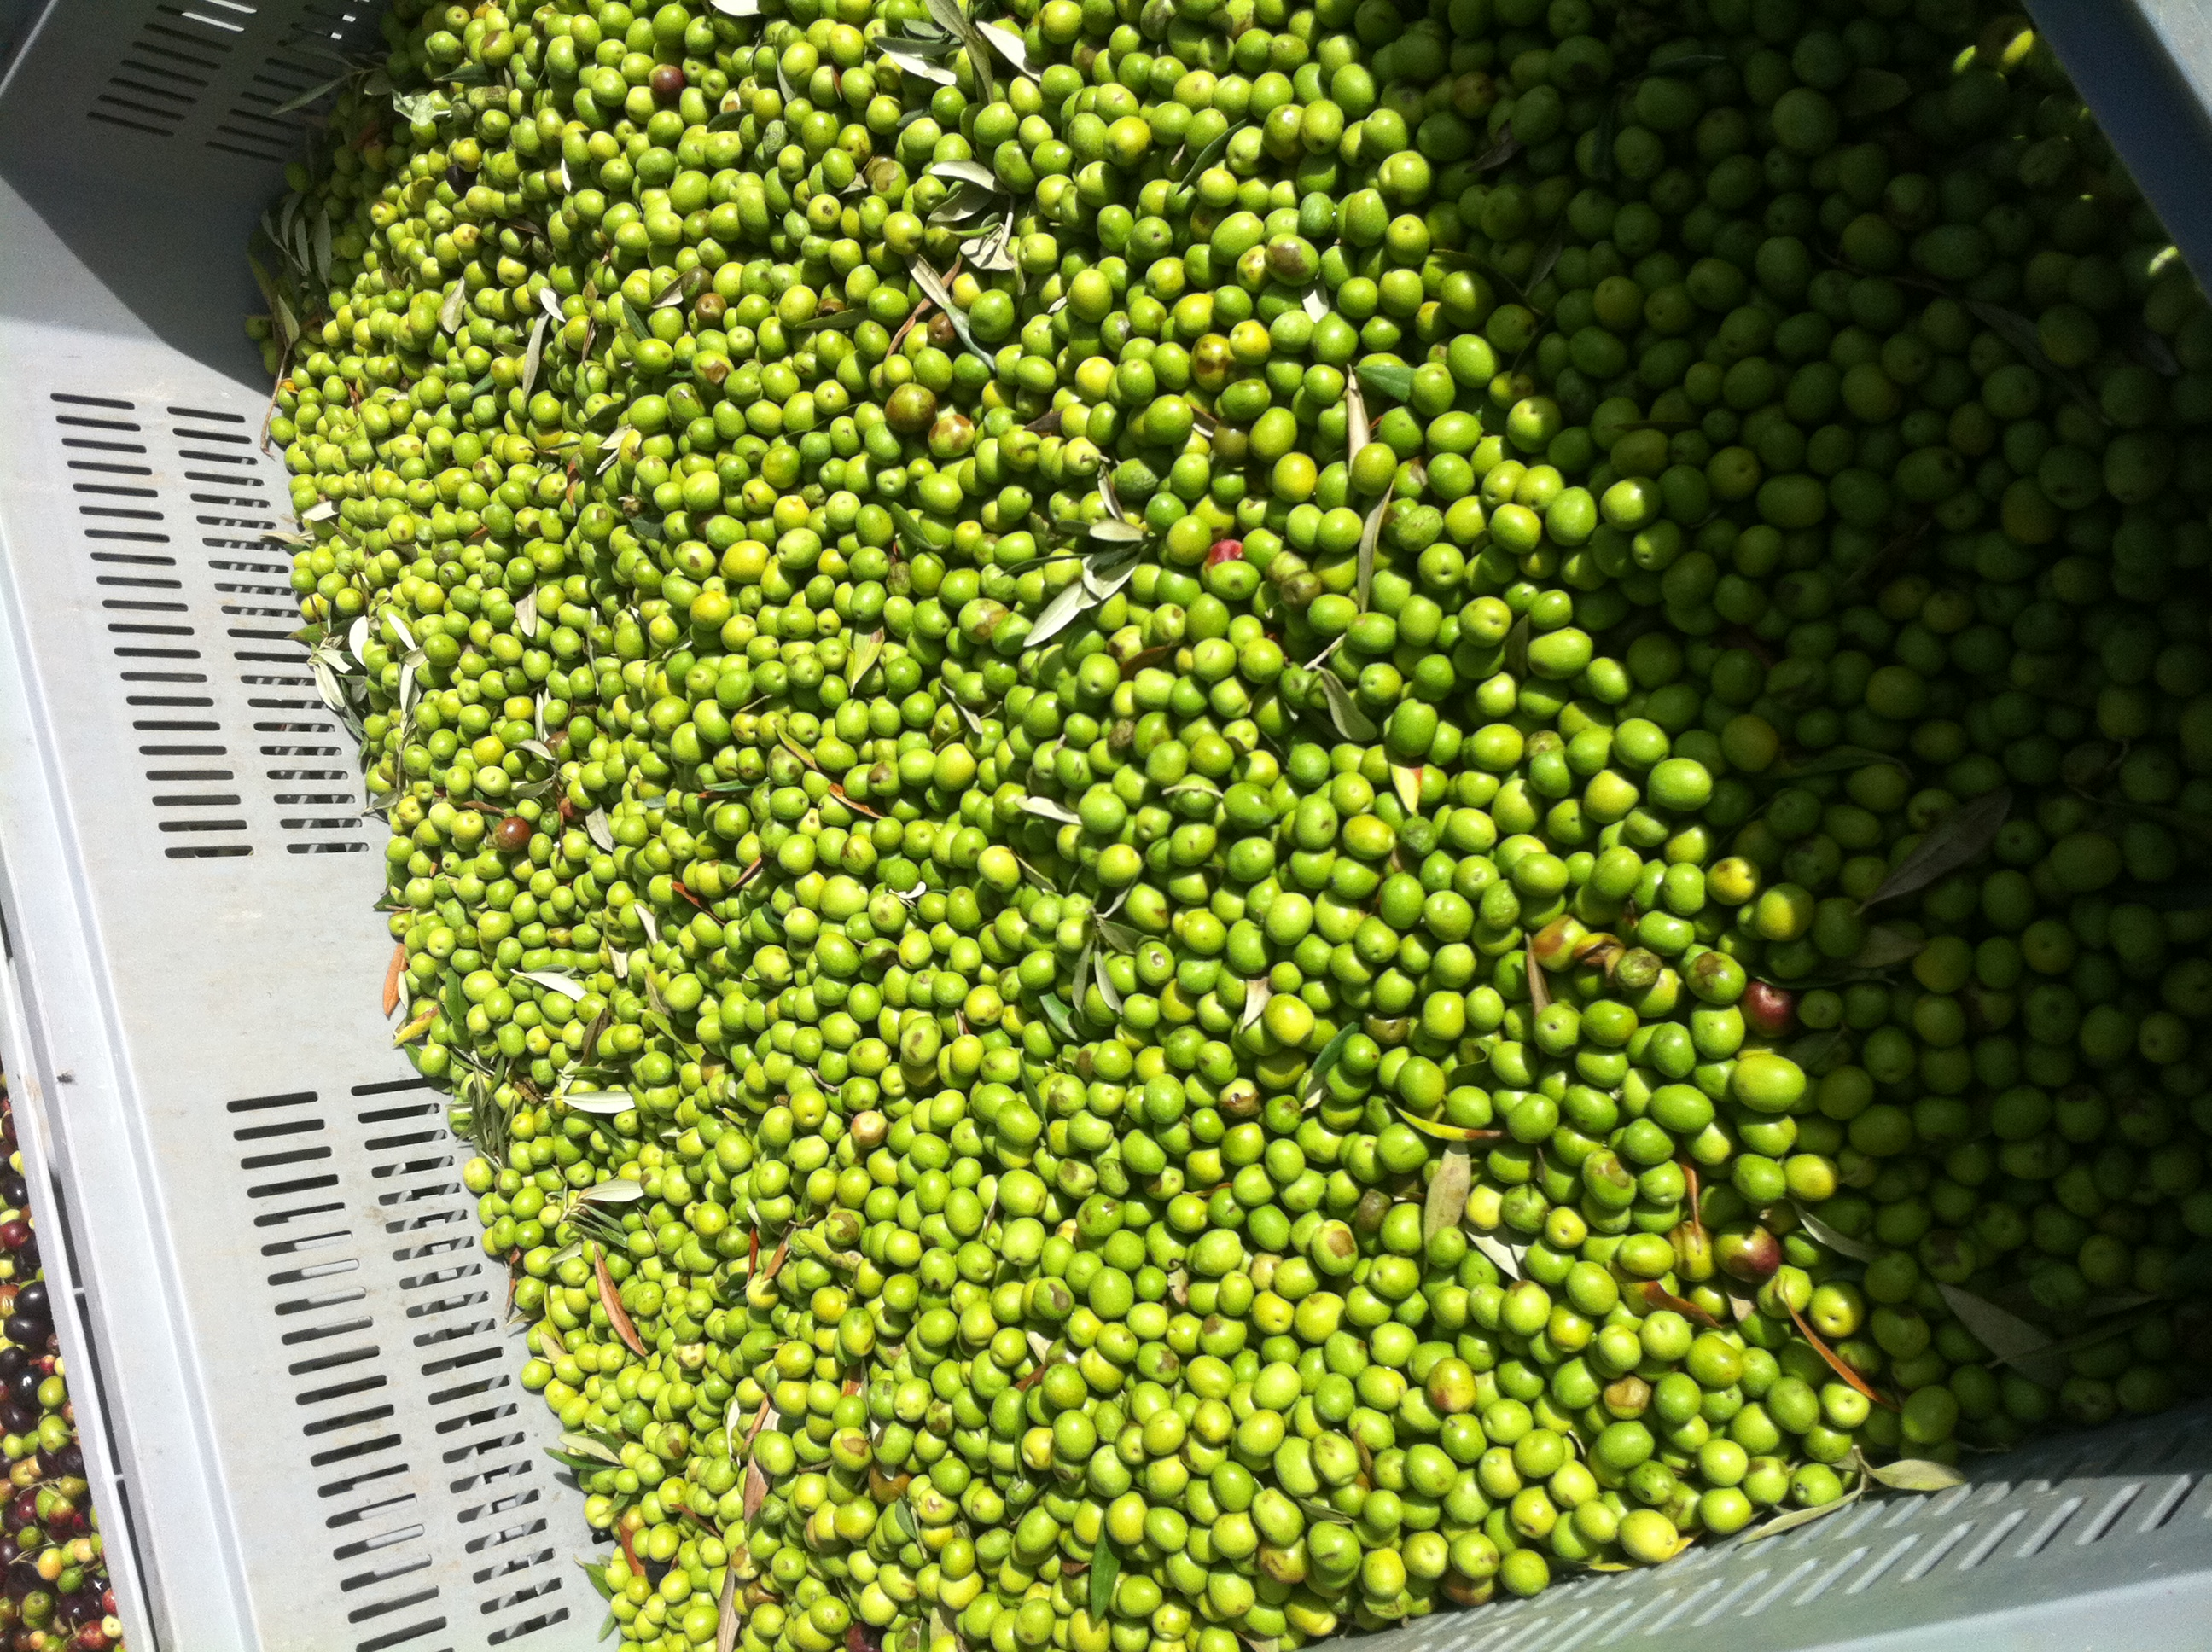 Olives to be processed